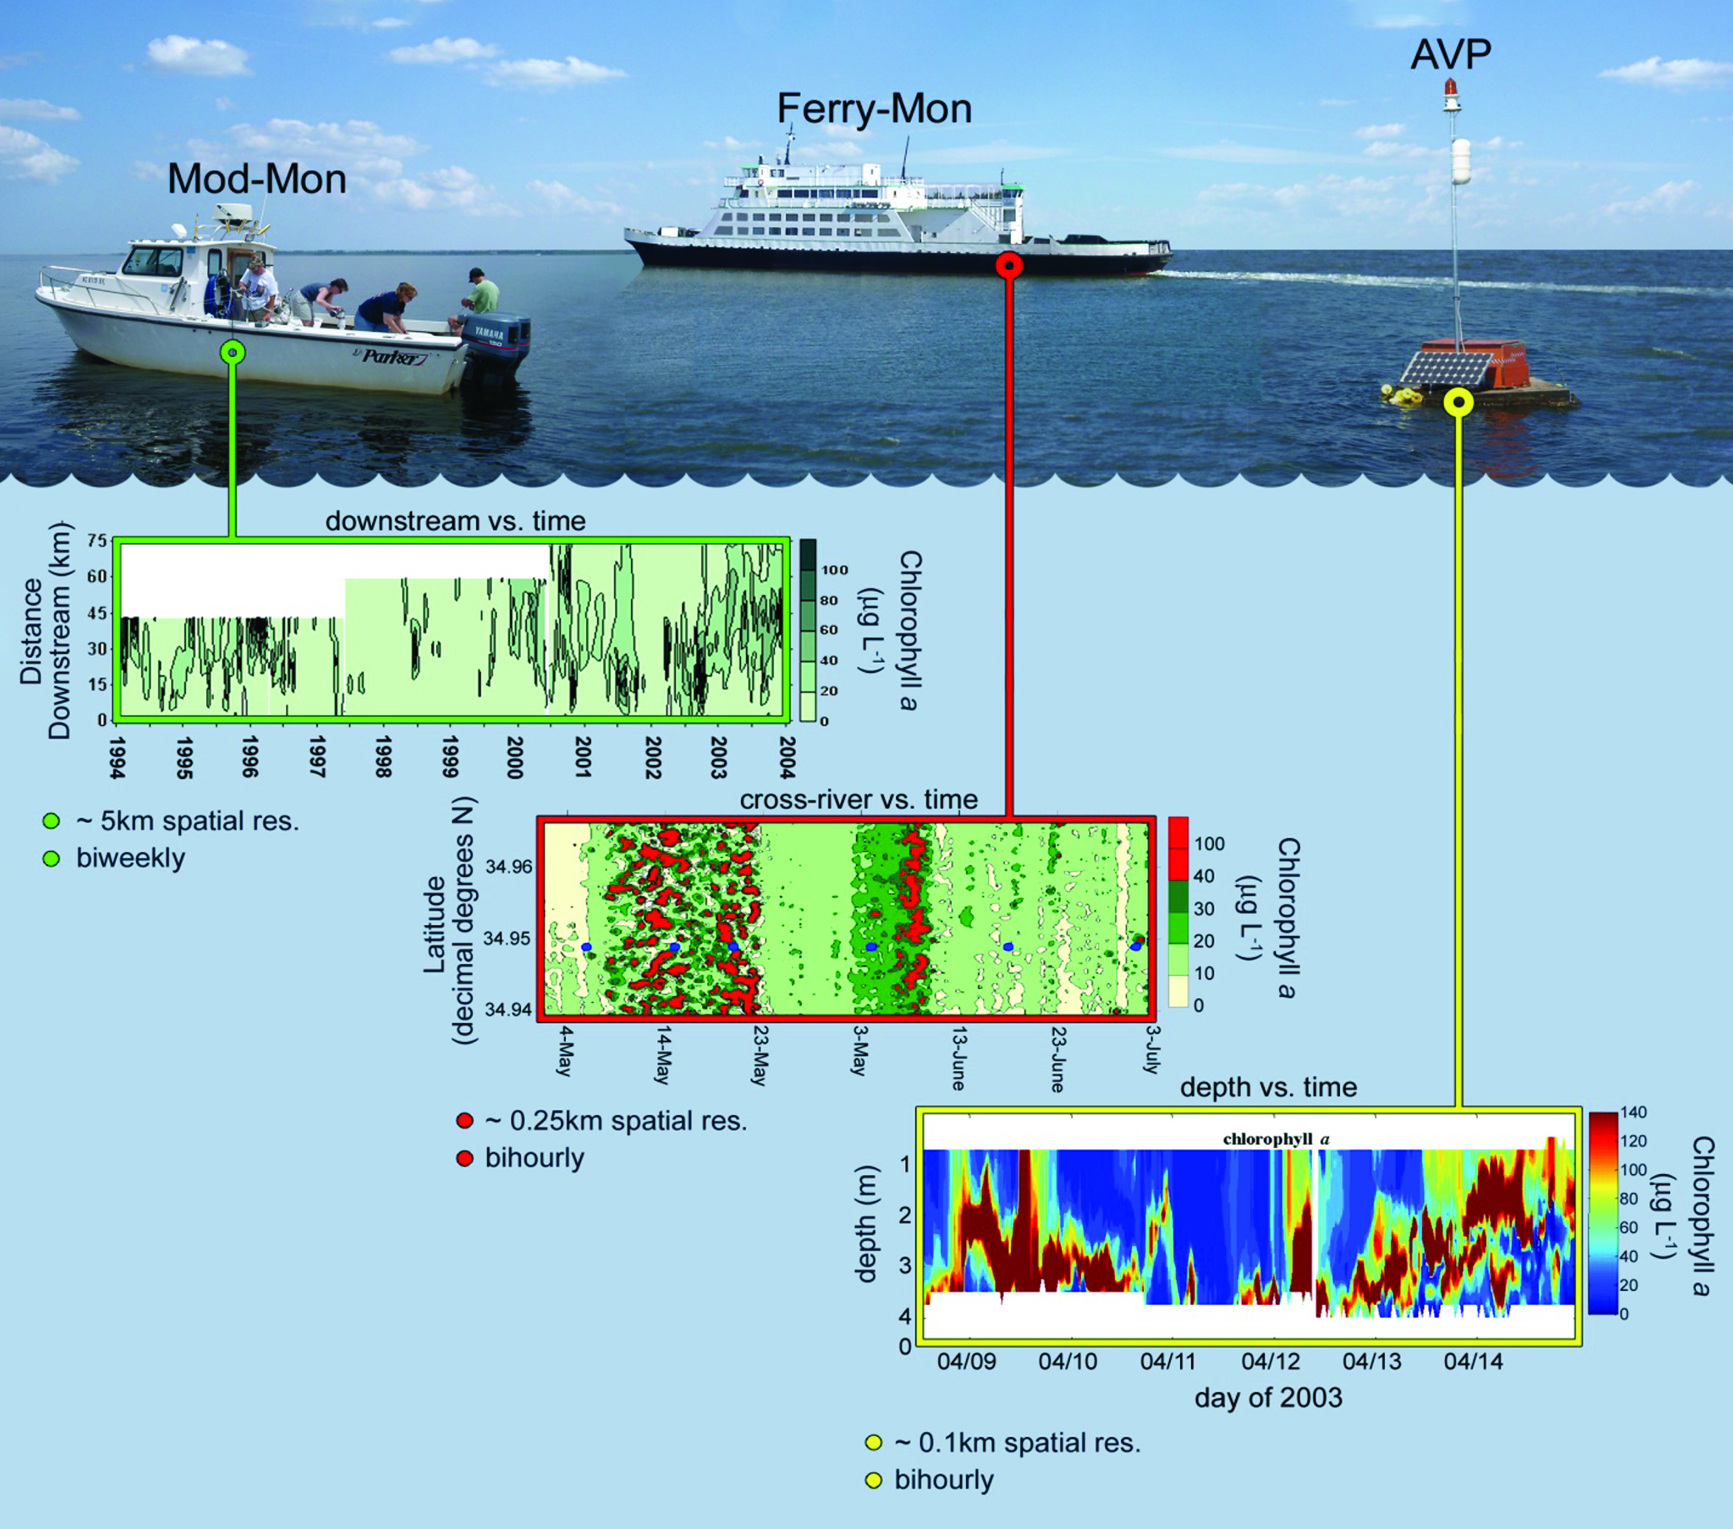 Figure 1 (above): ModMon stations, FerryMon routes, and AVP sites collect water quality data at different depths. Image by Alan Joyner.